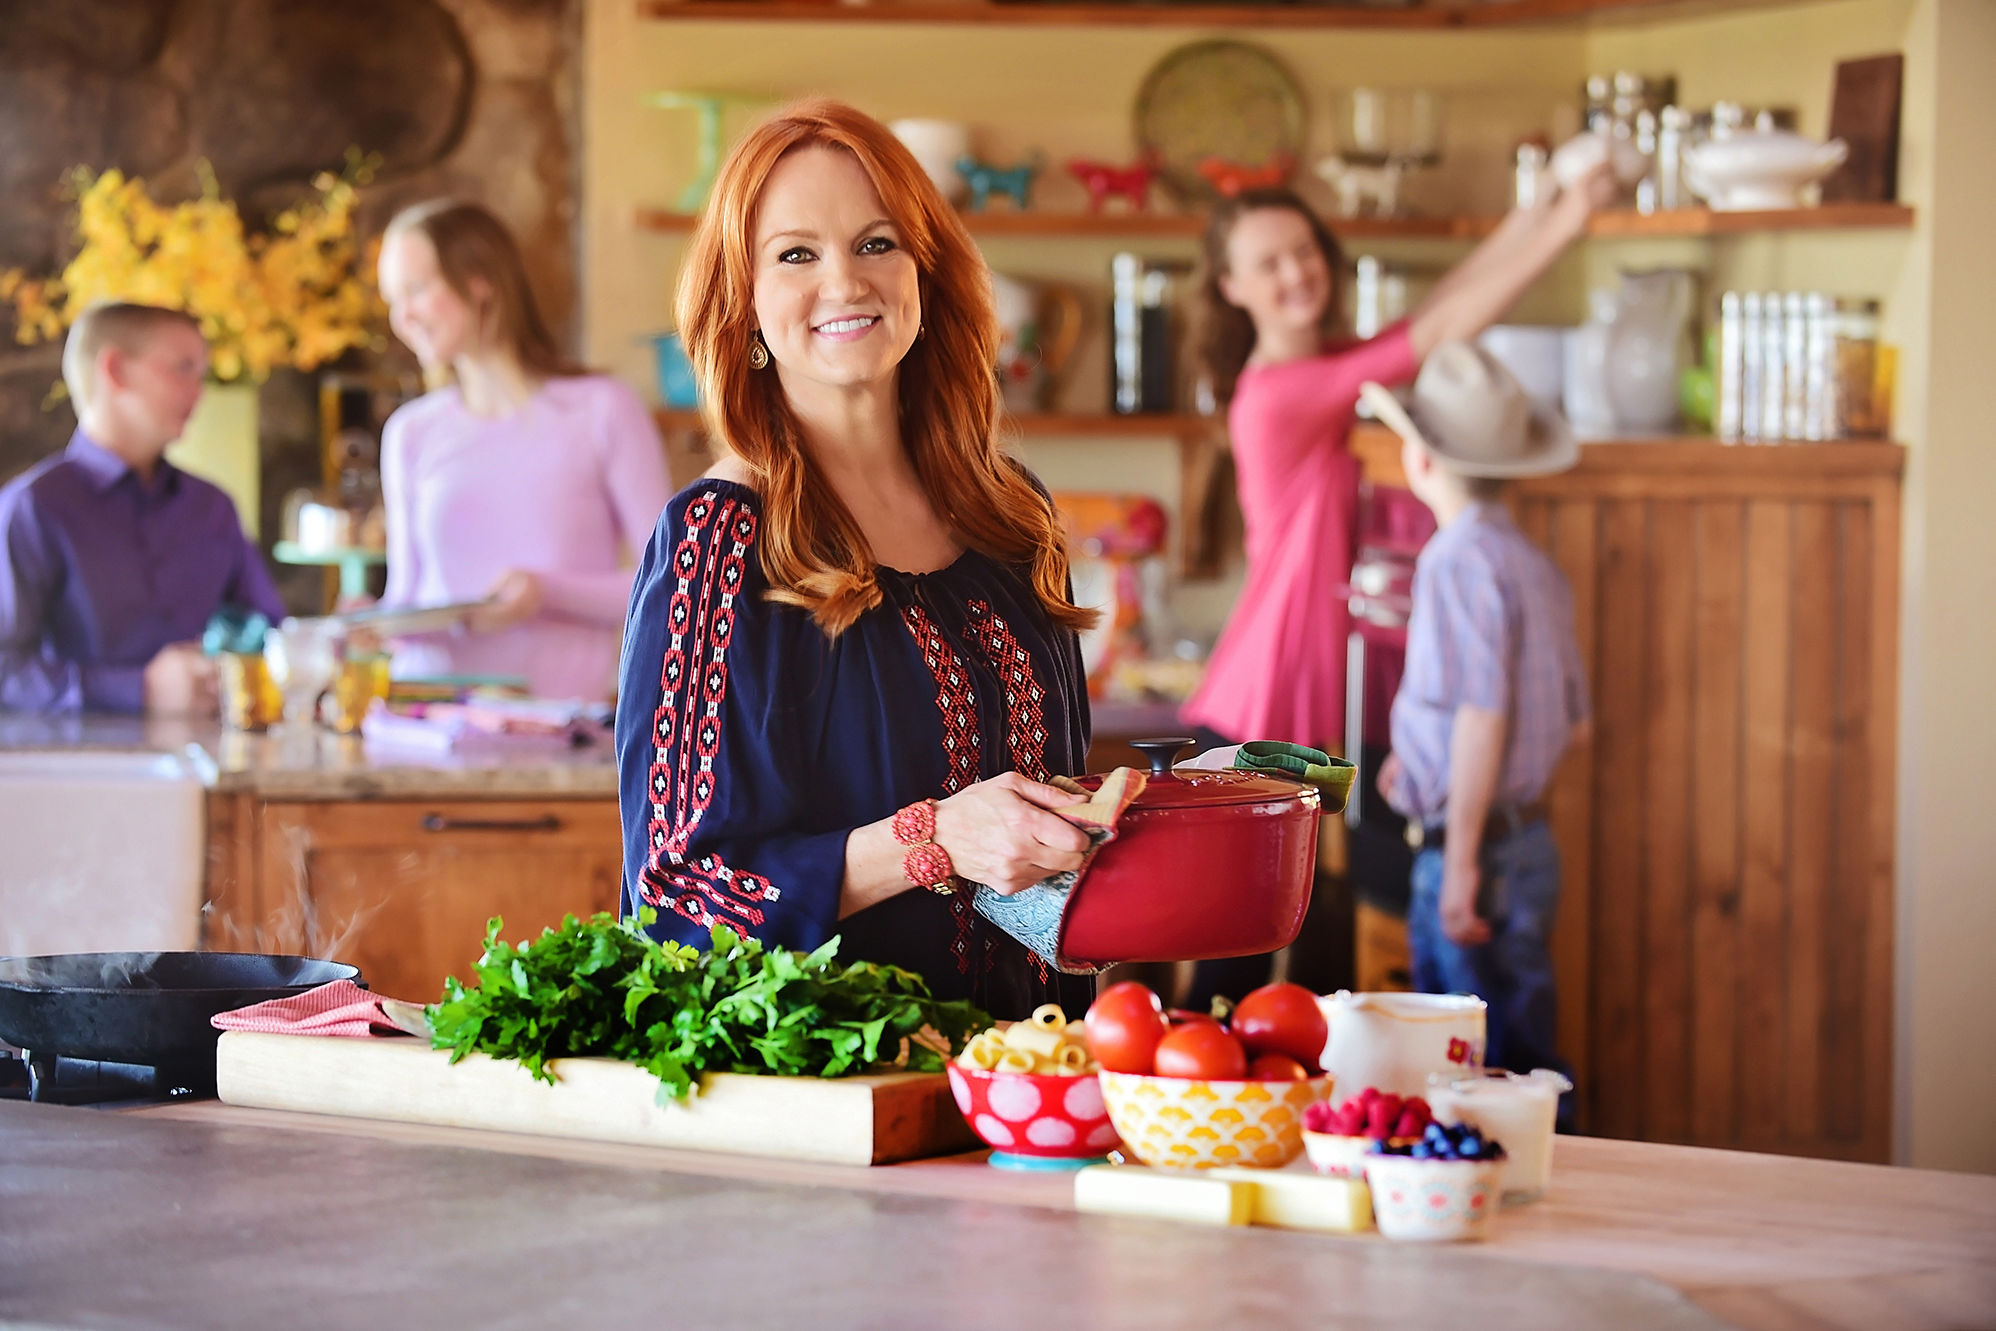 Pioneer Woman Ree Drummond Just Teased a New Cookbook—and It Already Looks Delicious